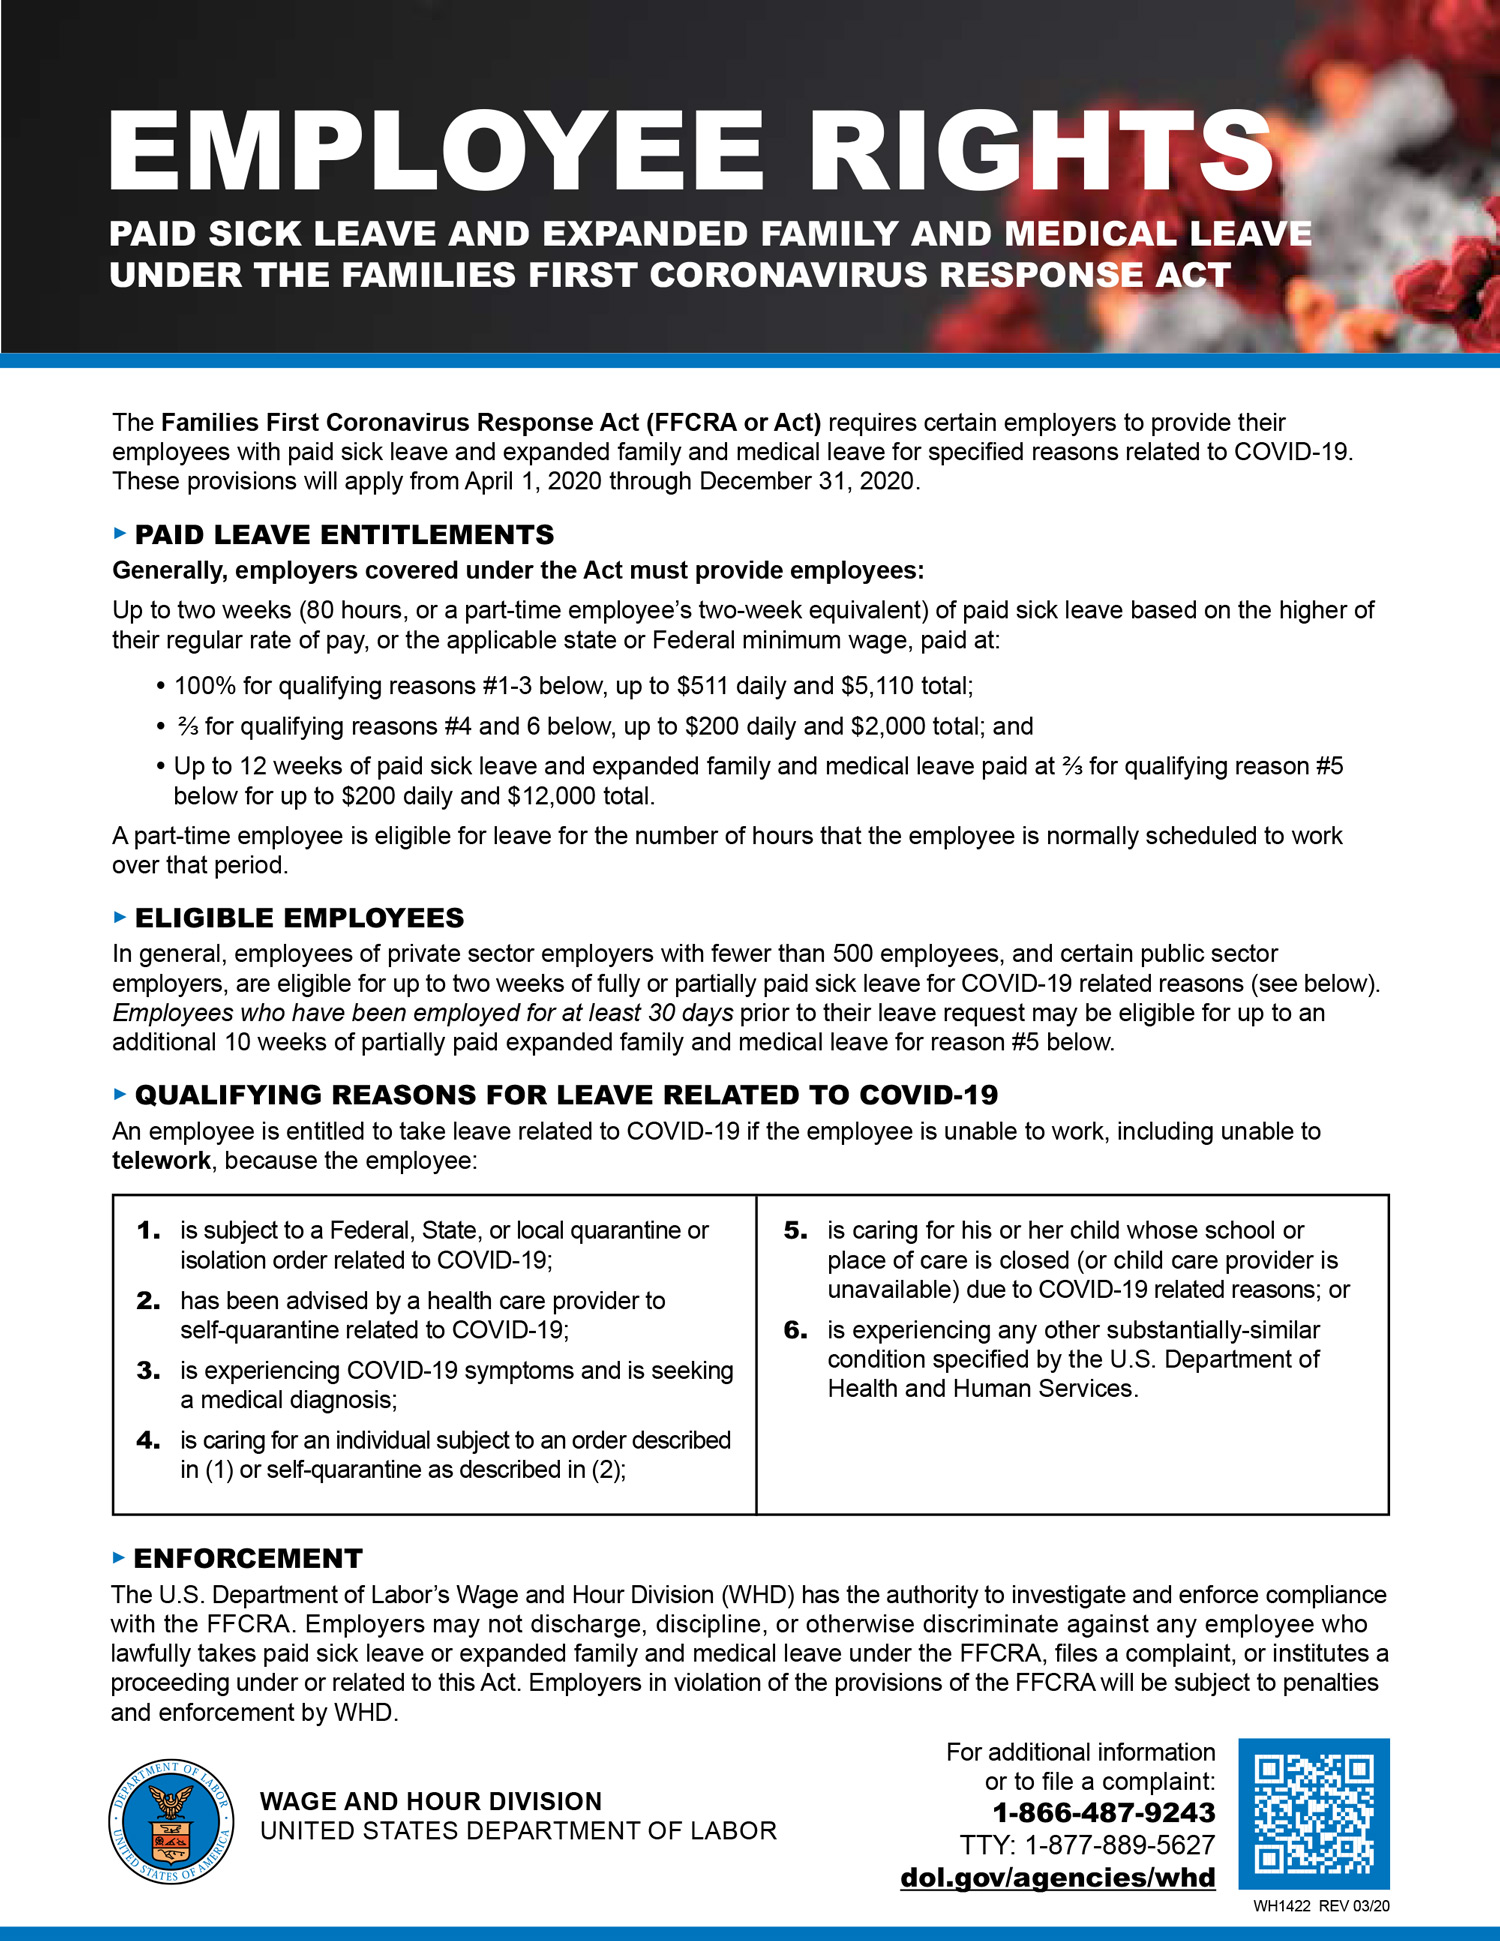 Image of Families First Coronavirus Response Act flyer